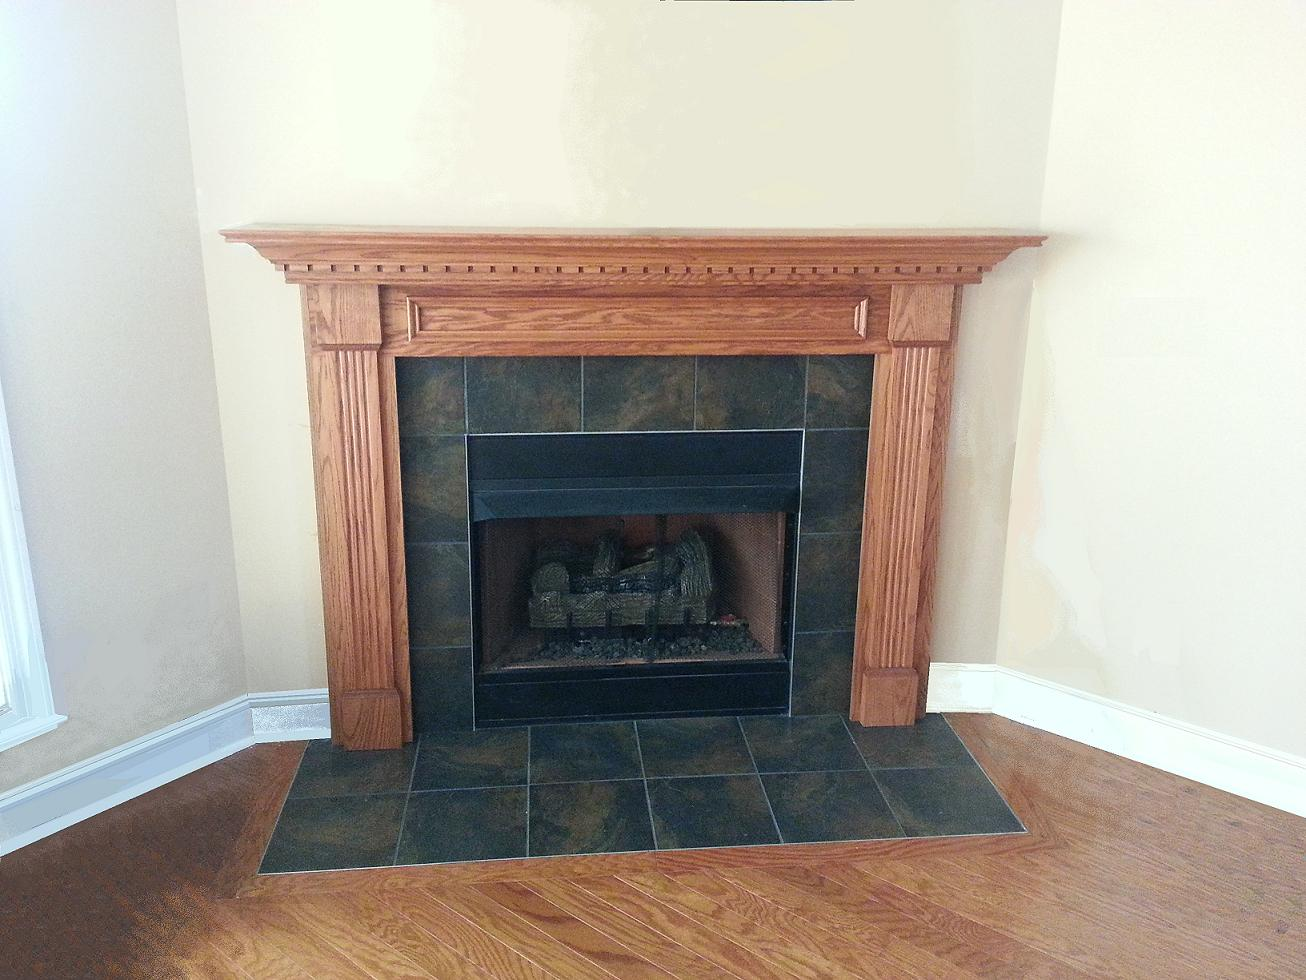 Fireplace Mantel installed by consumer | DIY Fireplace Makeover